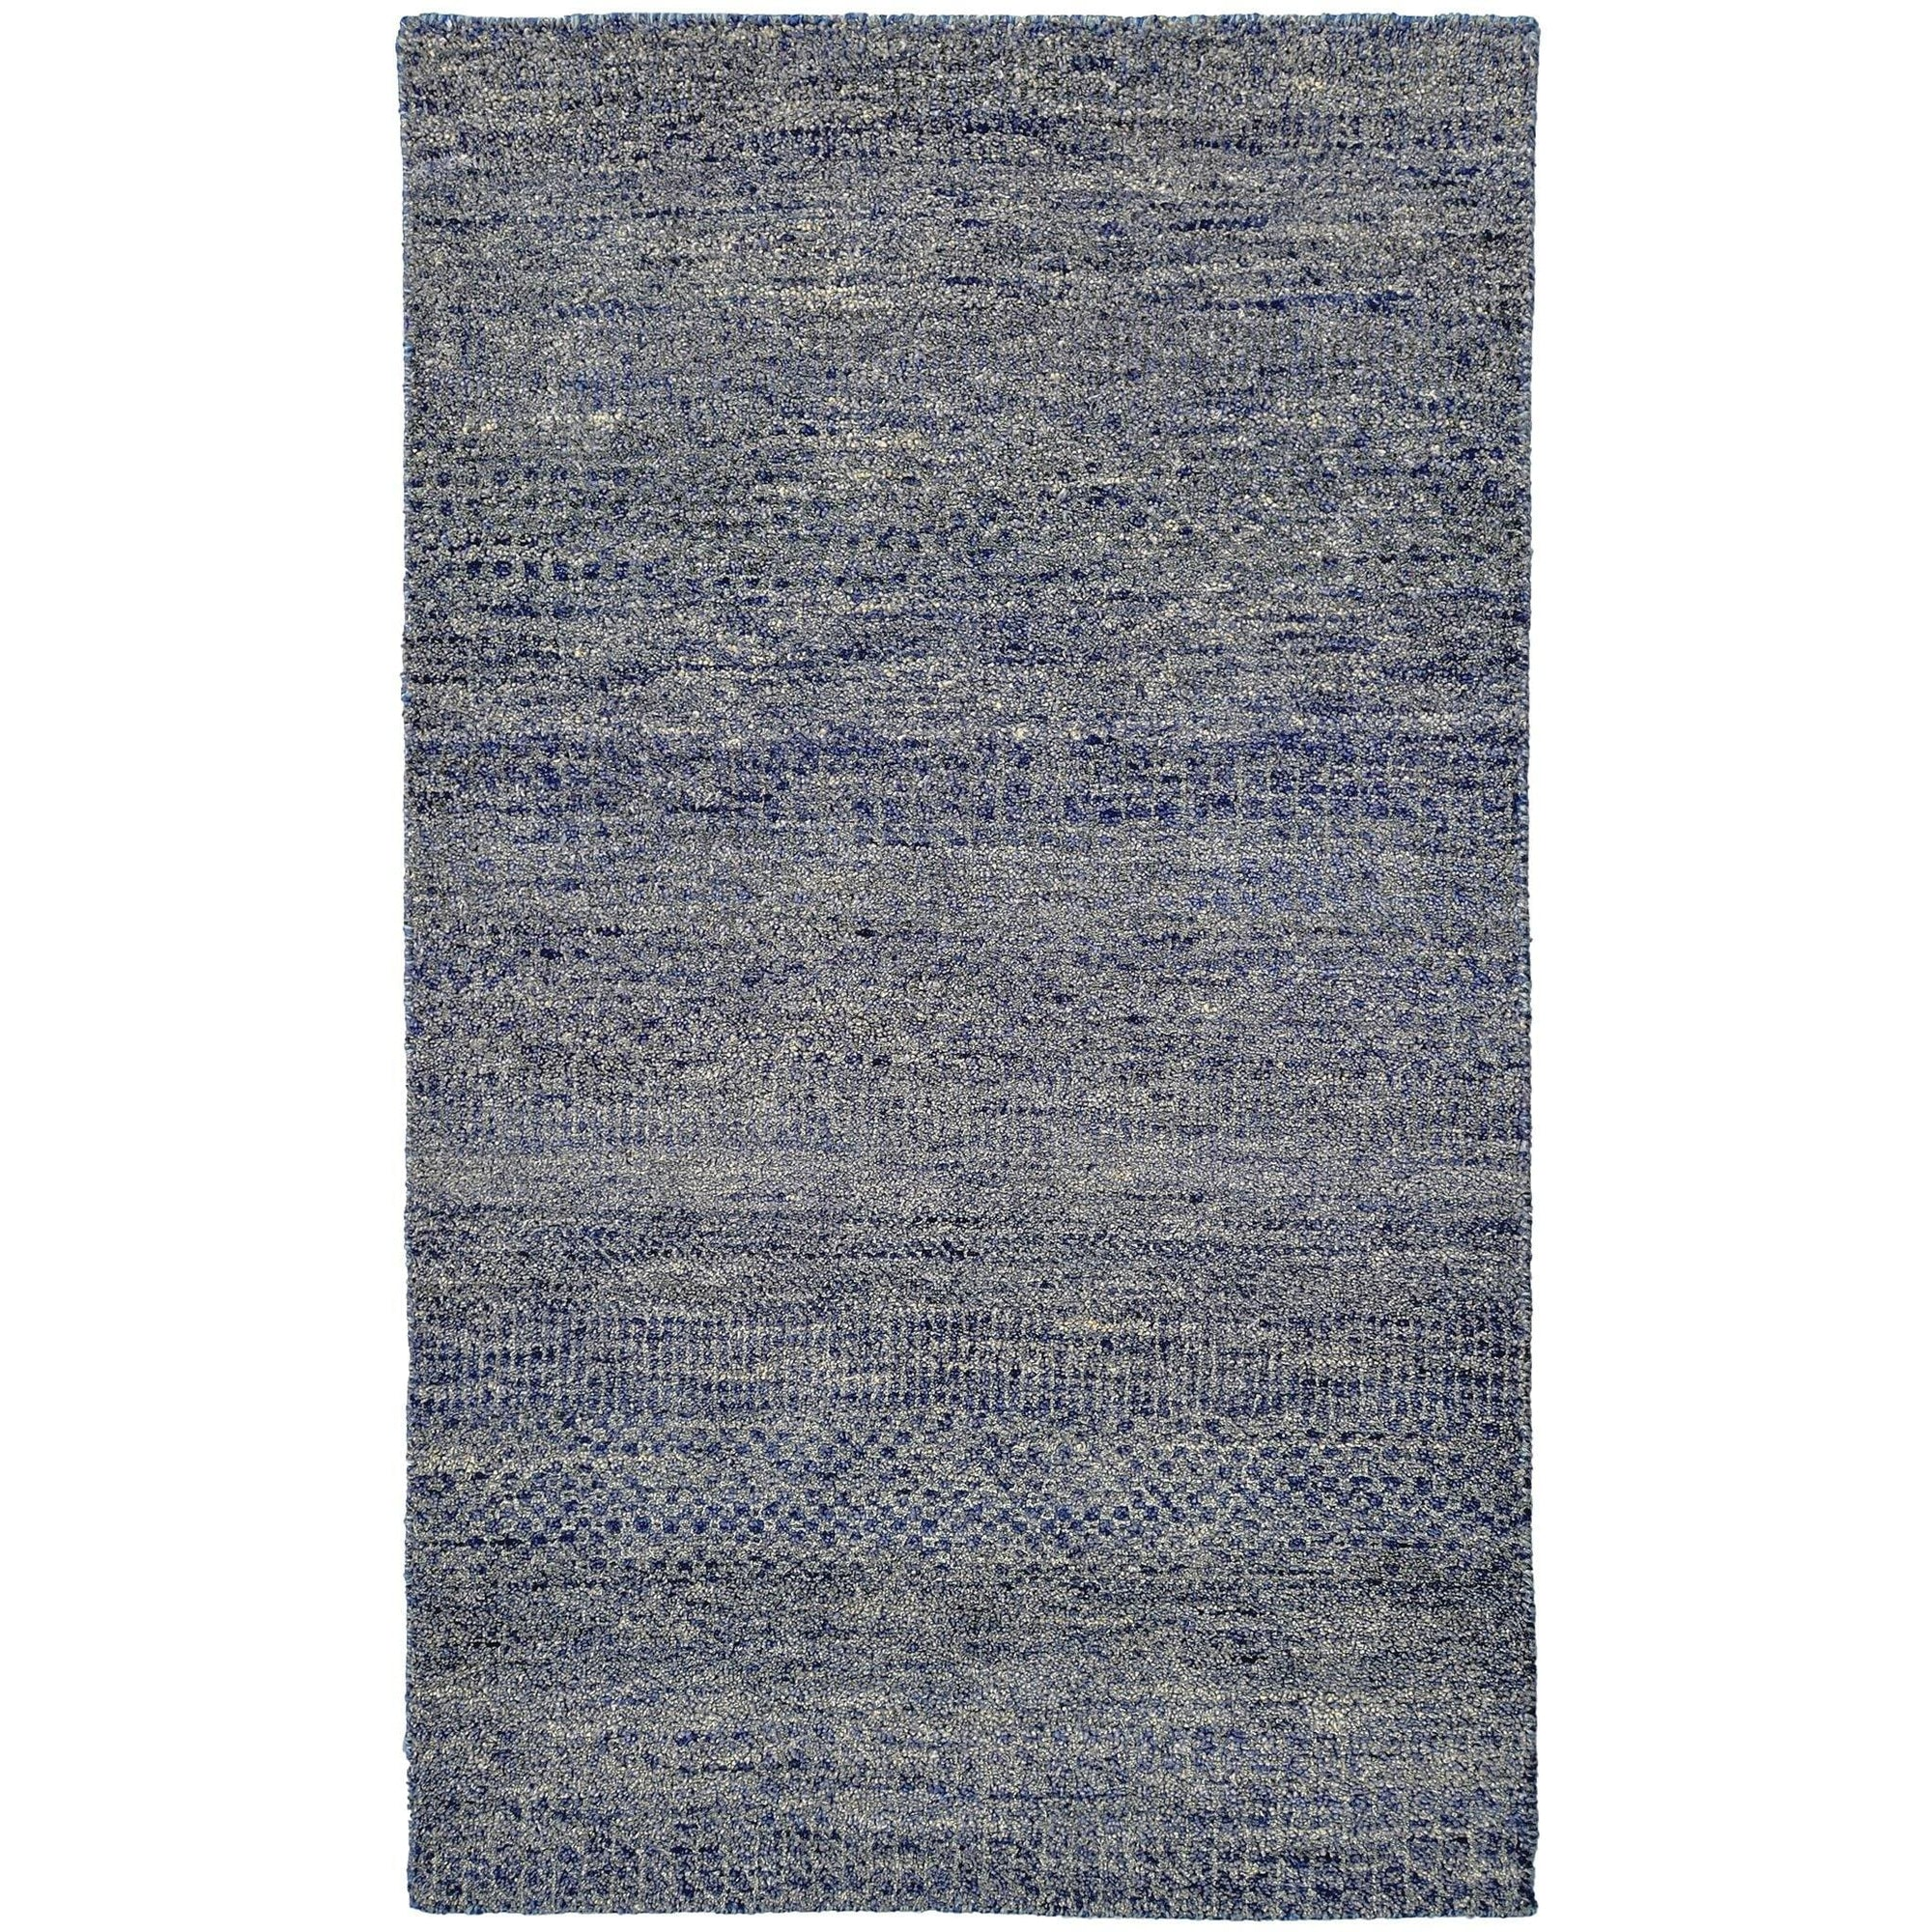 Fine Hand-knotted Modern Small Rug 62cm x 102cm Persian-Rug | House-of-Haghi | NewMarket | Auckland | NZ | Handmade Persian Rugs | Hand Knotted Persian Rugs